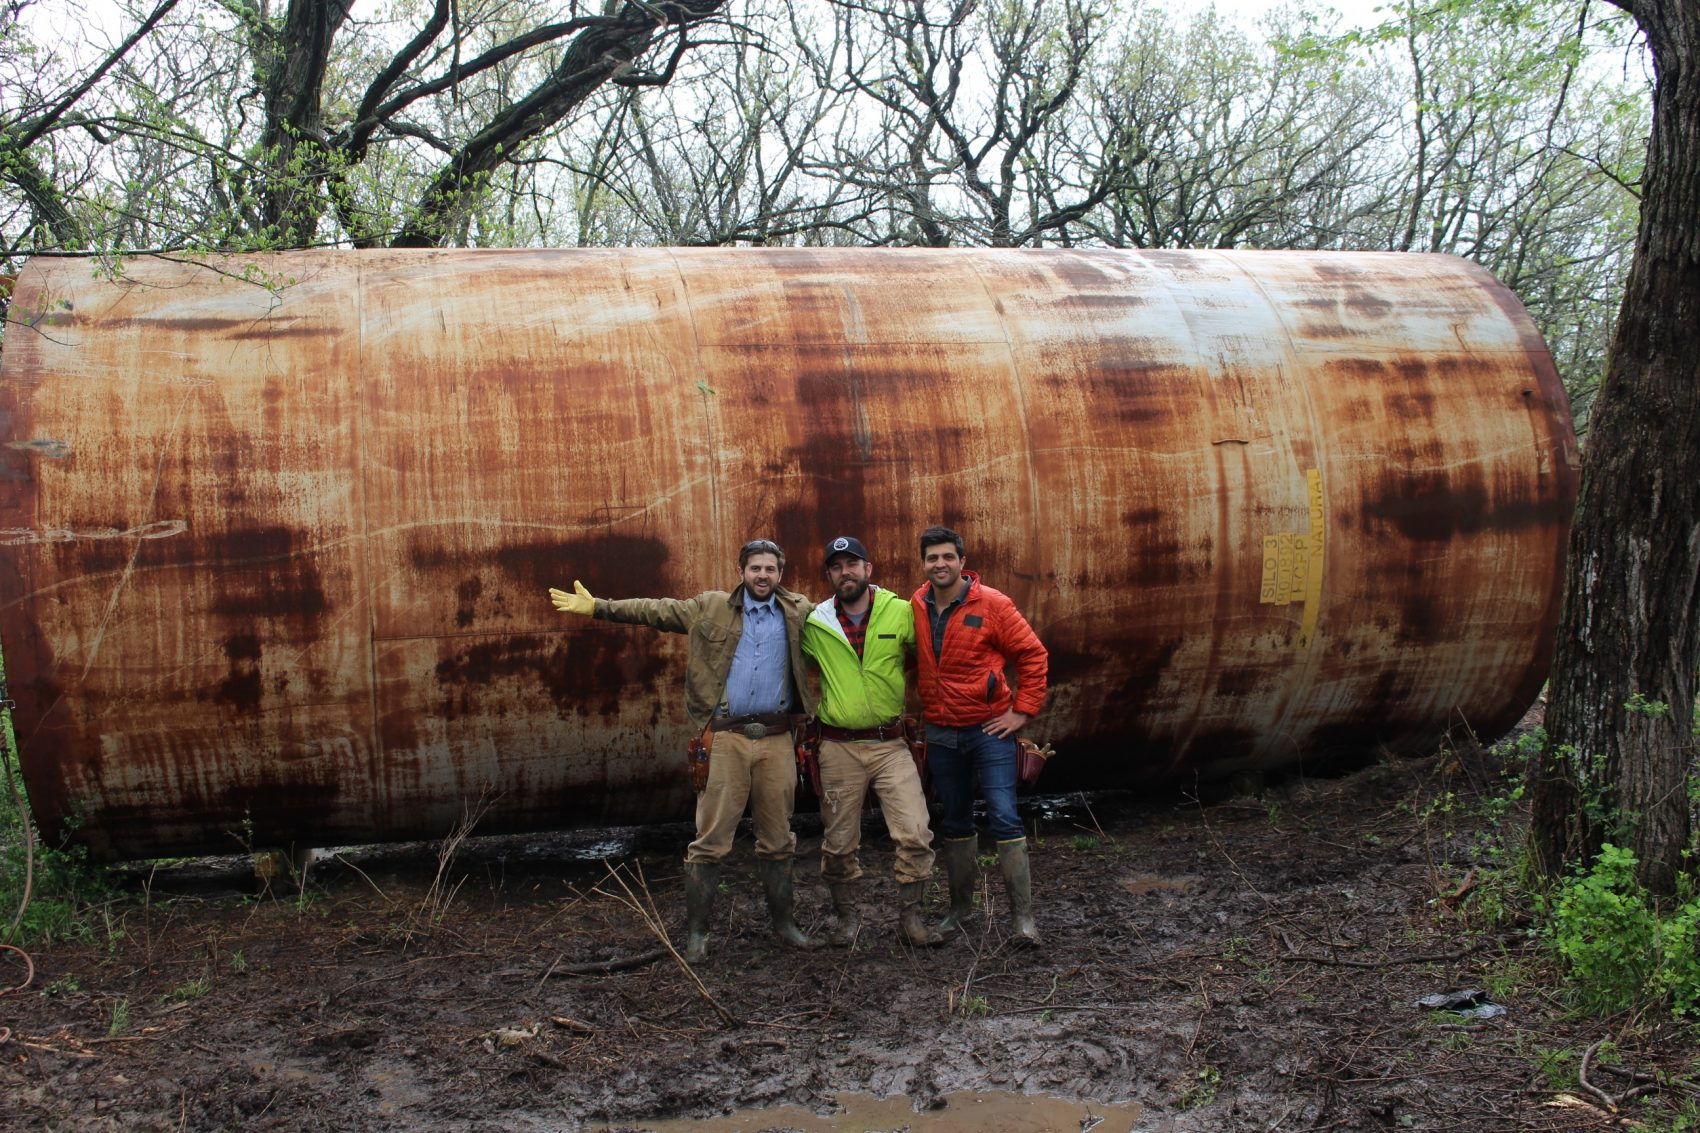 """Rehan Nana (left), Kyle Davis (center) and Taimoor Nana, hosts of """"You Can't Turn That Into A House,"""" in front of an old grain silo. (Courtesy A+E Networks)"""